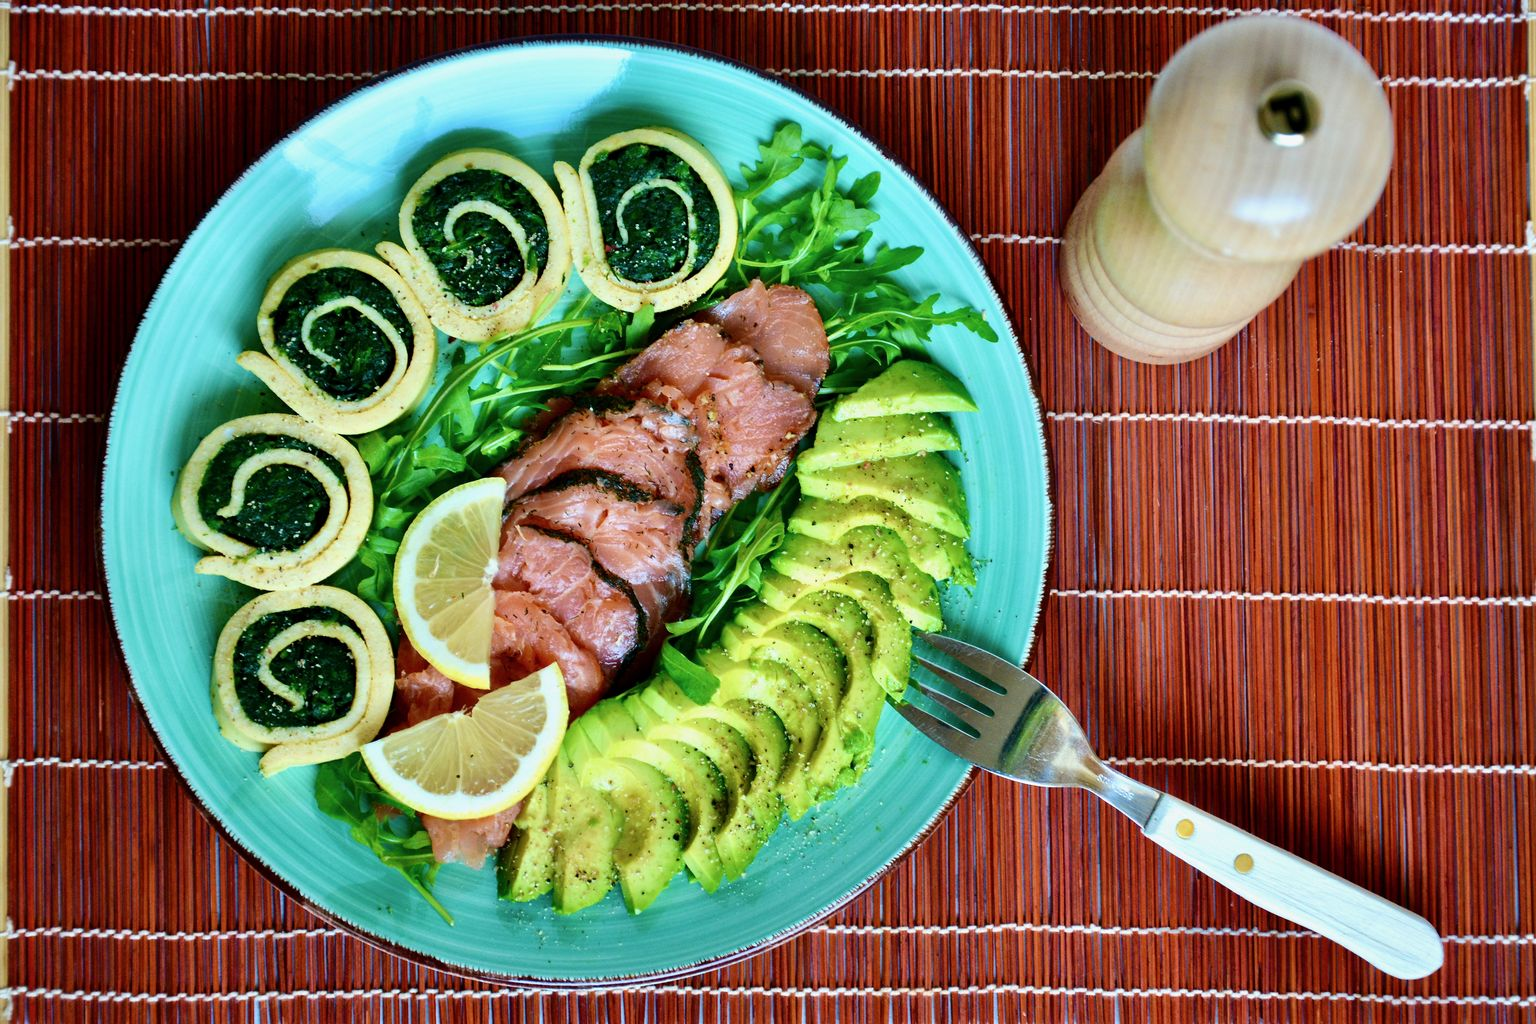 Paleo Spinach Breakfast Roll with Salmon and Avocado